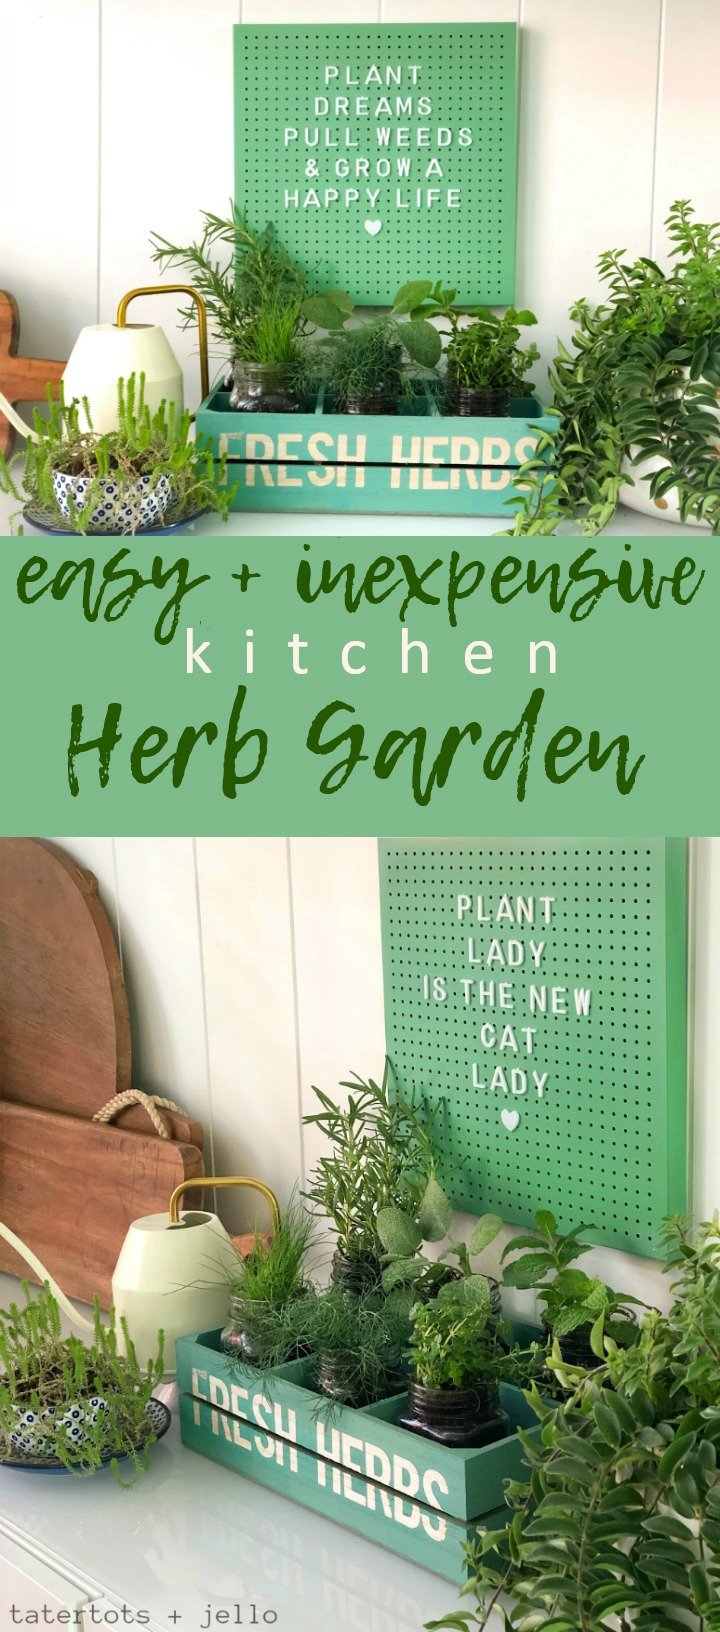 Create an easy and inexpensive kitchen herb garden with dollar spot items!